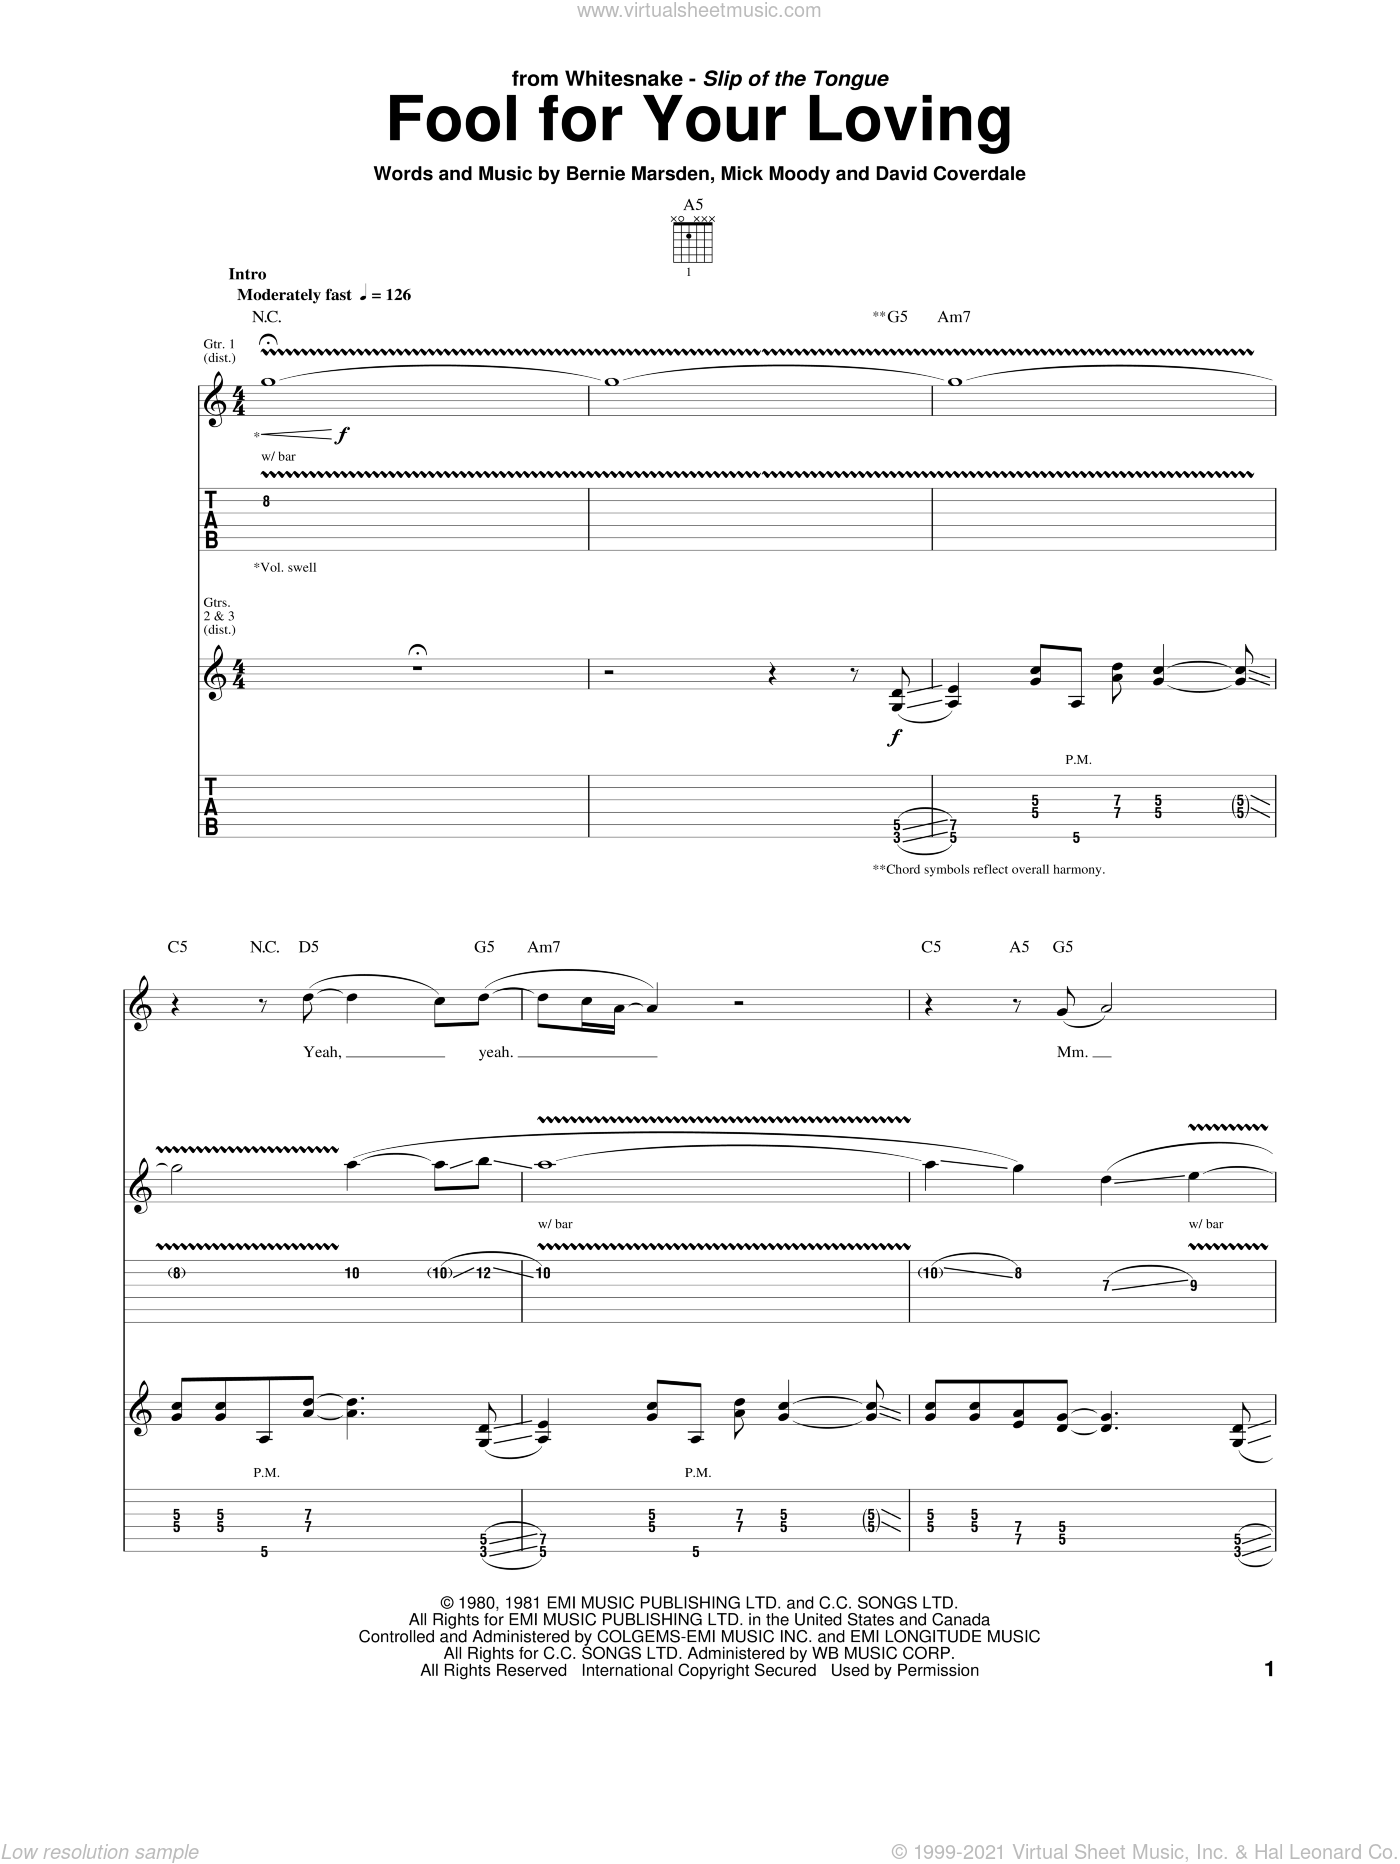 Fool For Your Loving sheet music for guitar (tablature) by Whitesnake, Bernie Marsden and David Coverdale, intermediate guitar (tablature). Score Image Preview.